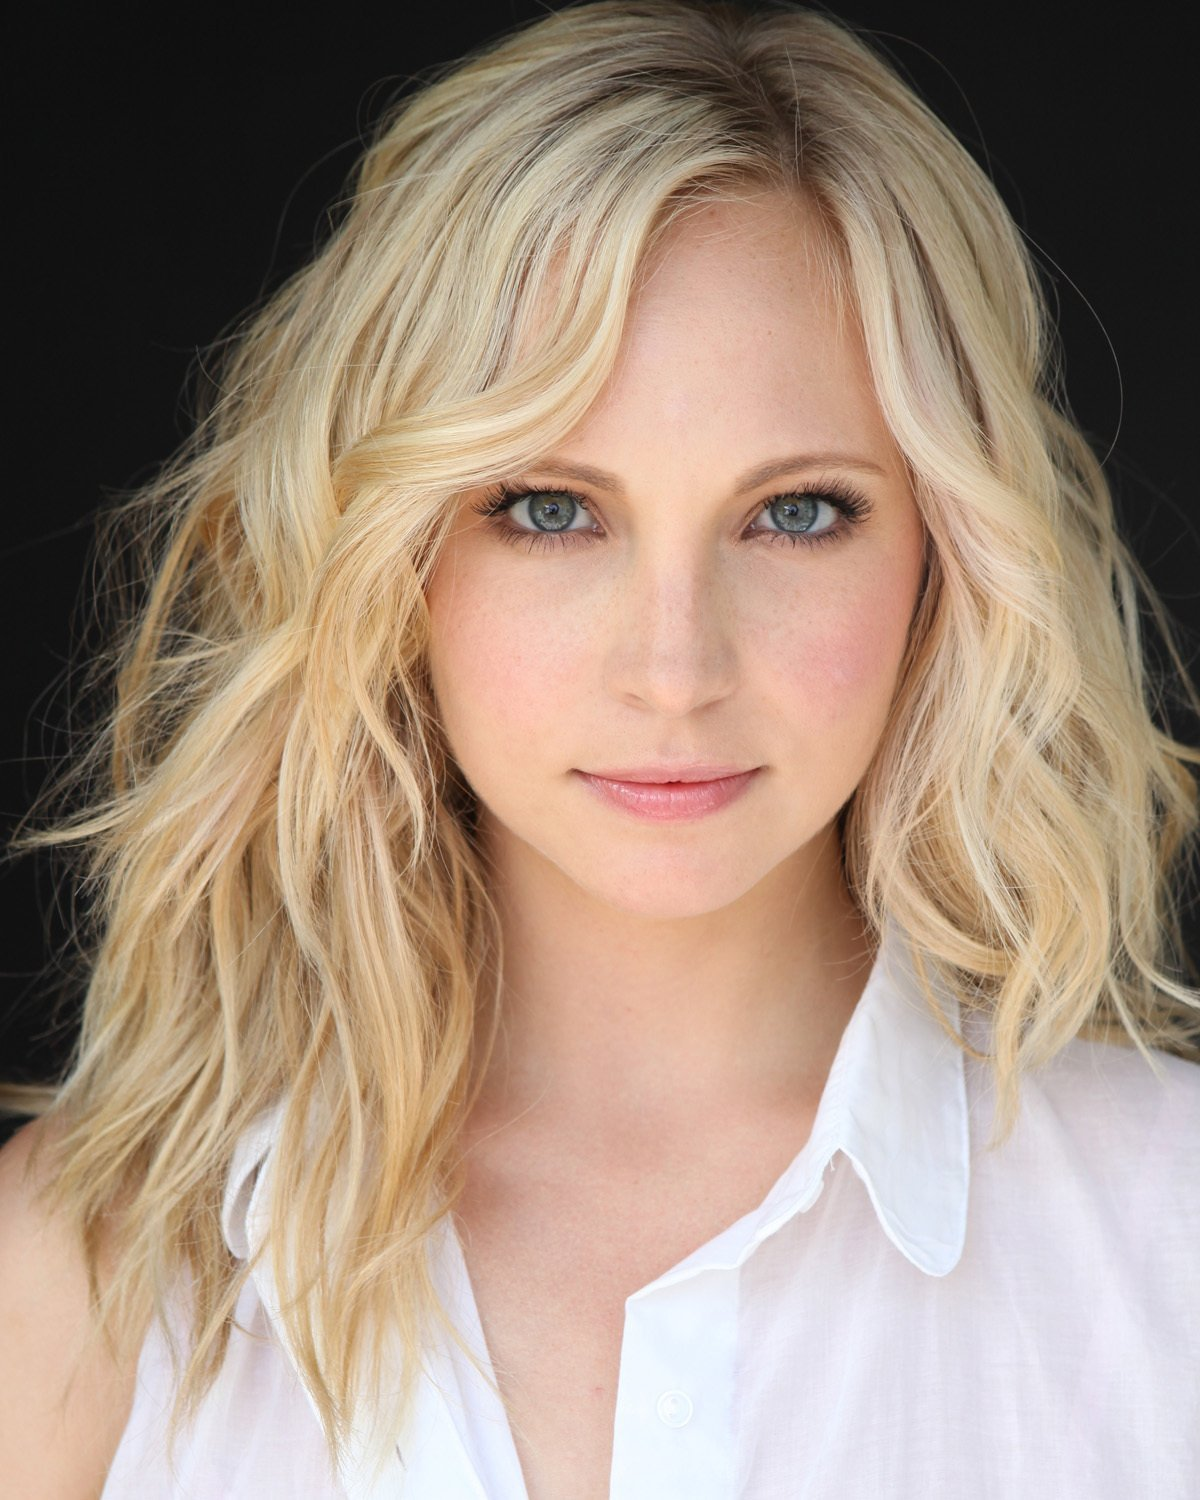 Candice Accola - Wallpaper